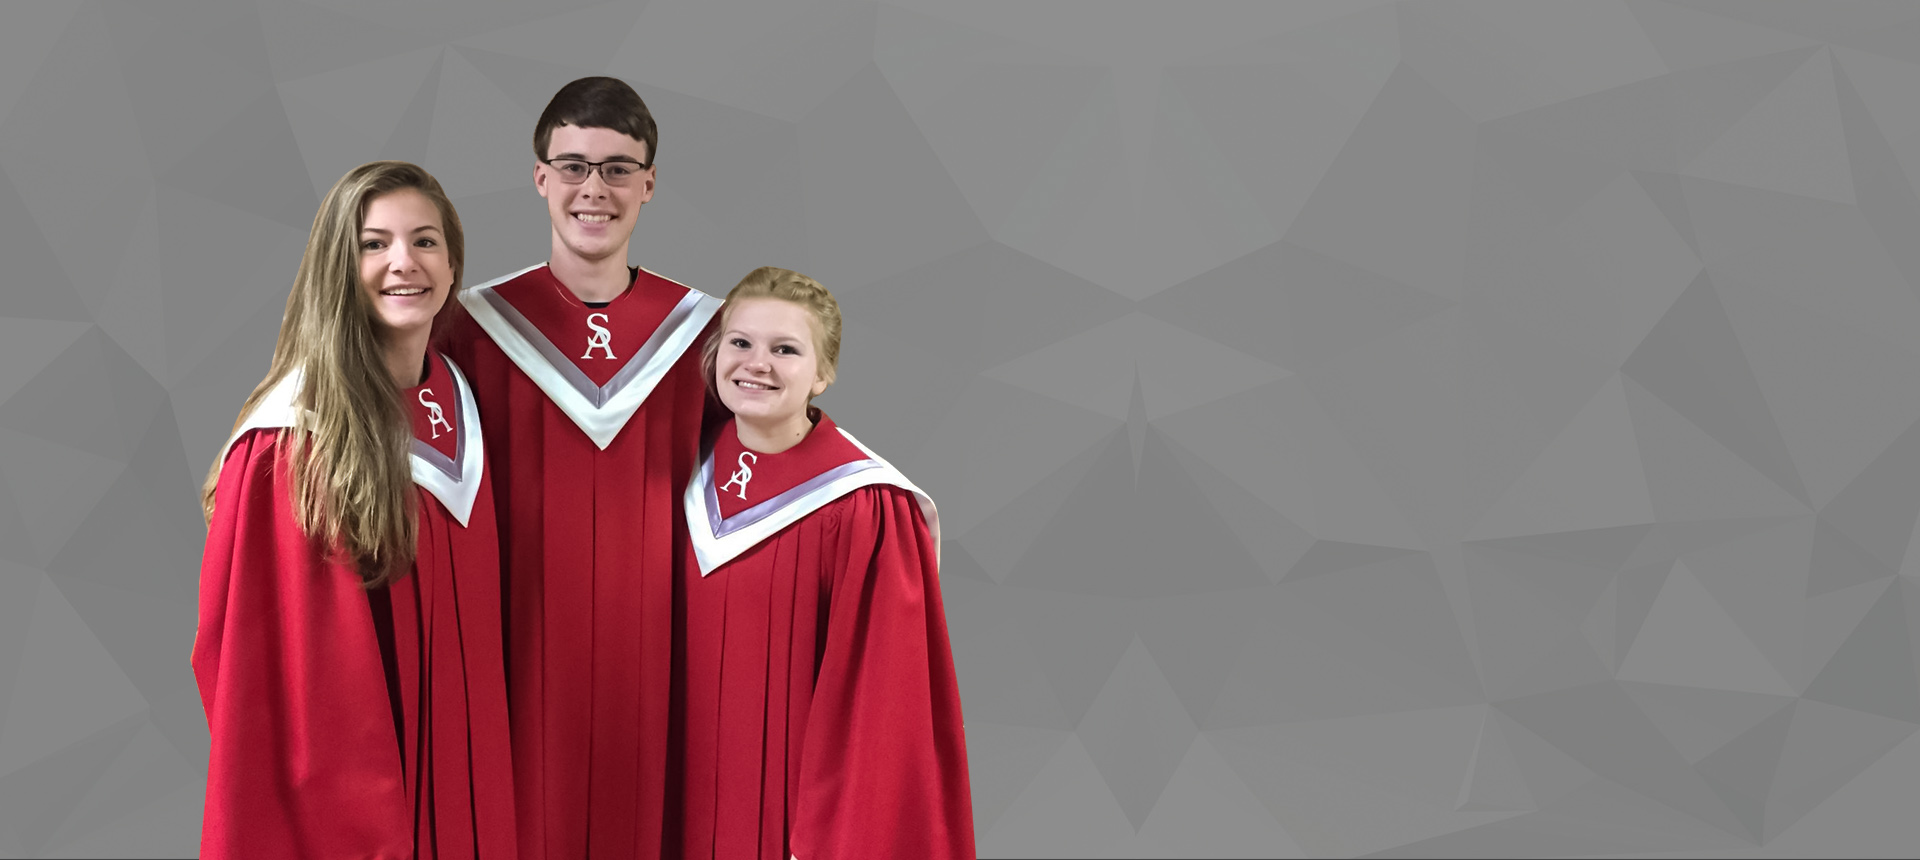 Buy Quality and Inexpensive Choral Attire at IvyRobes